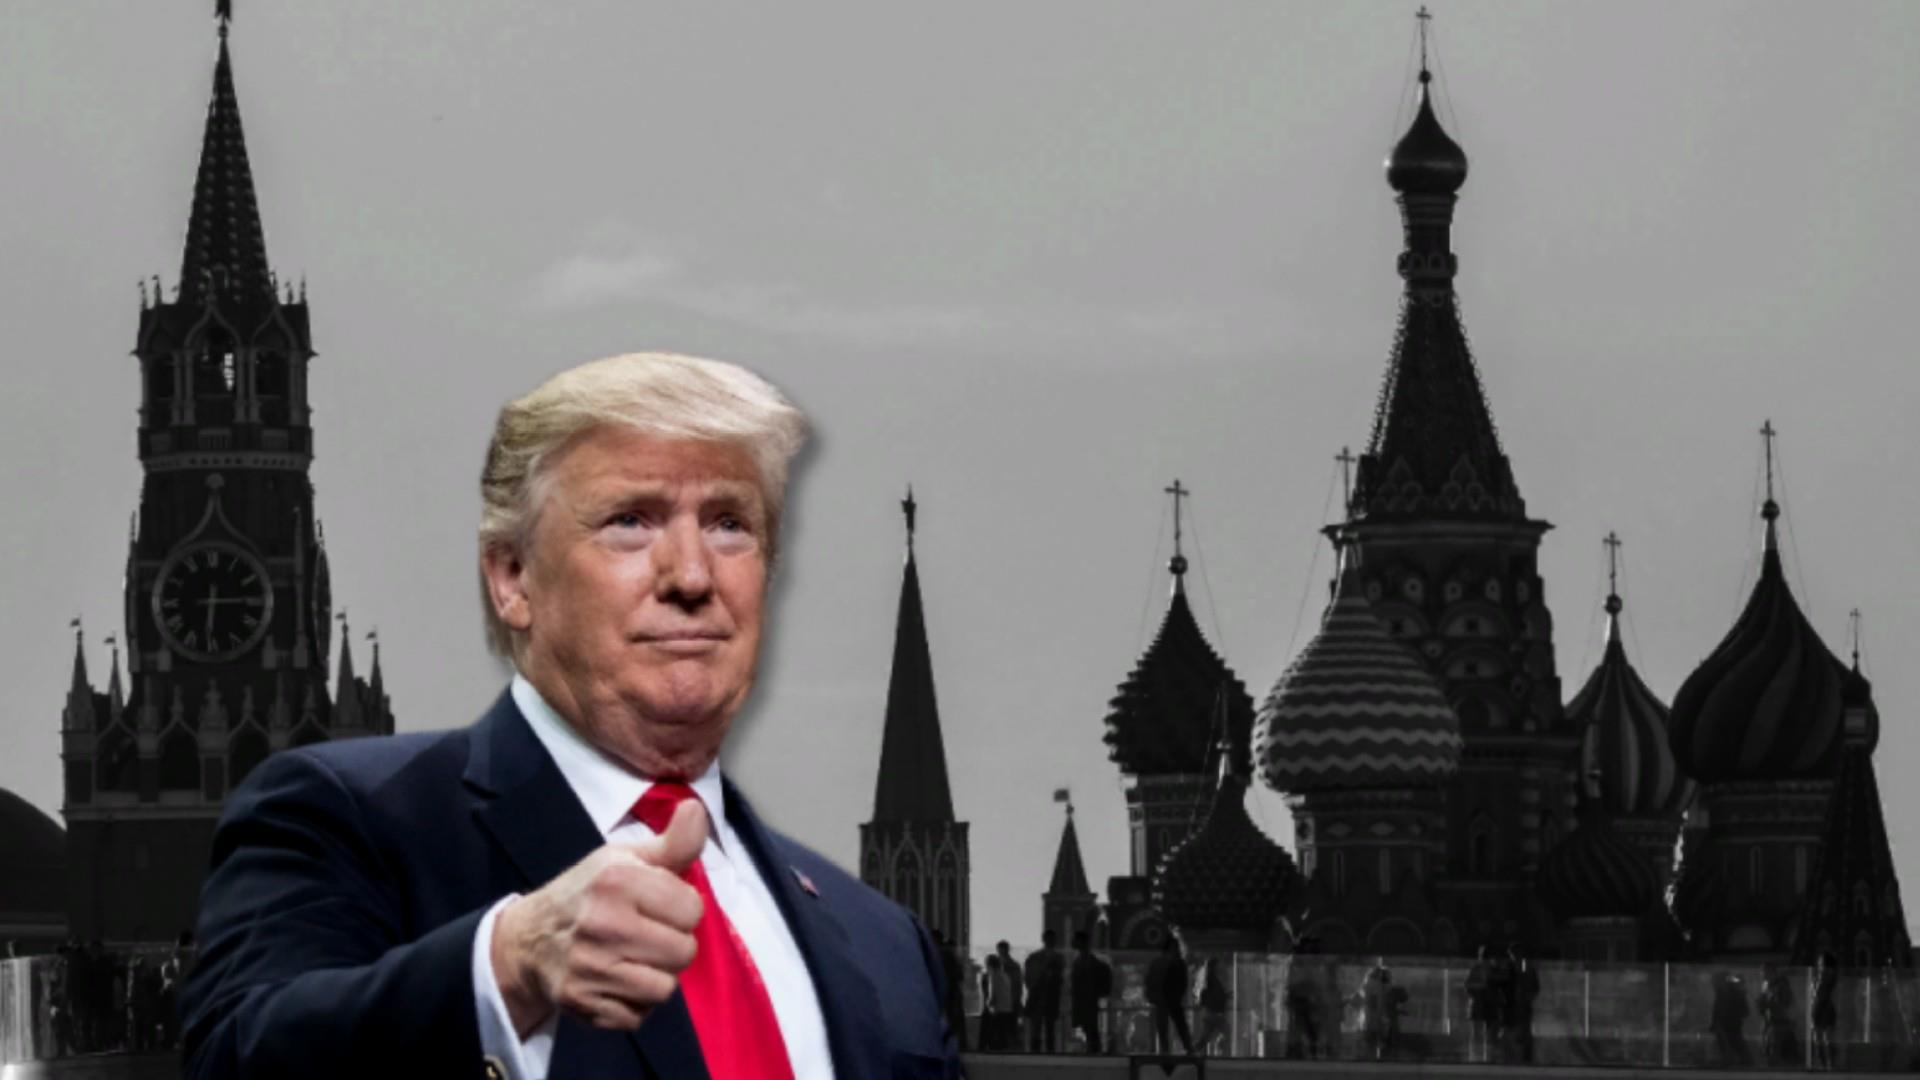 WAPO: As threat of Russia grows for 2020 race, Trump won't talk about it